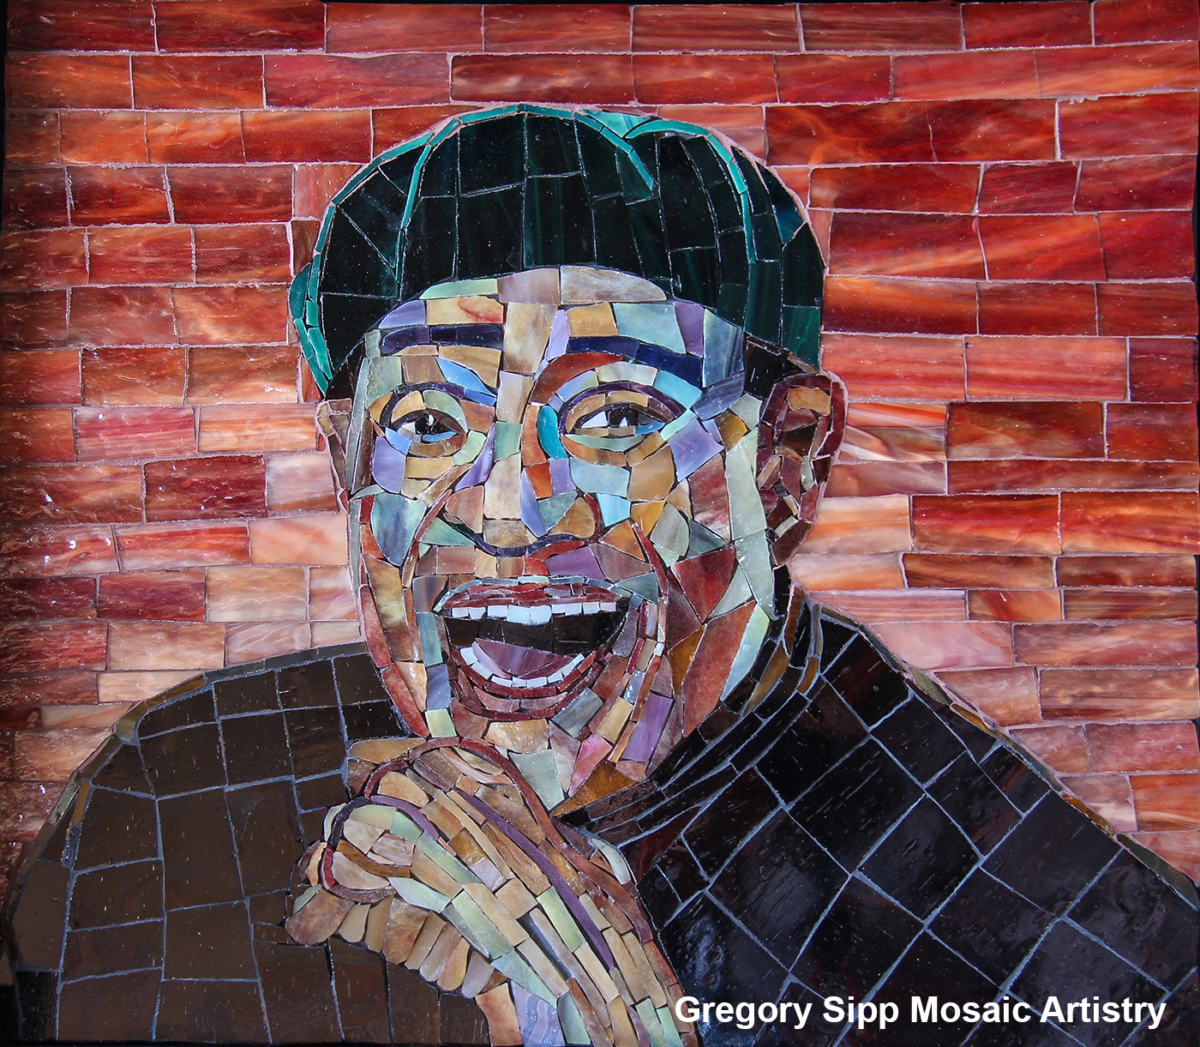 Click here to view this rare Mosaic of Al Jarreau